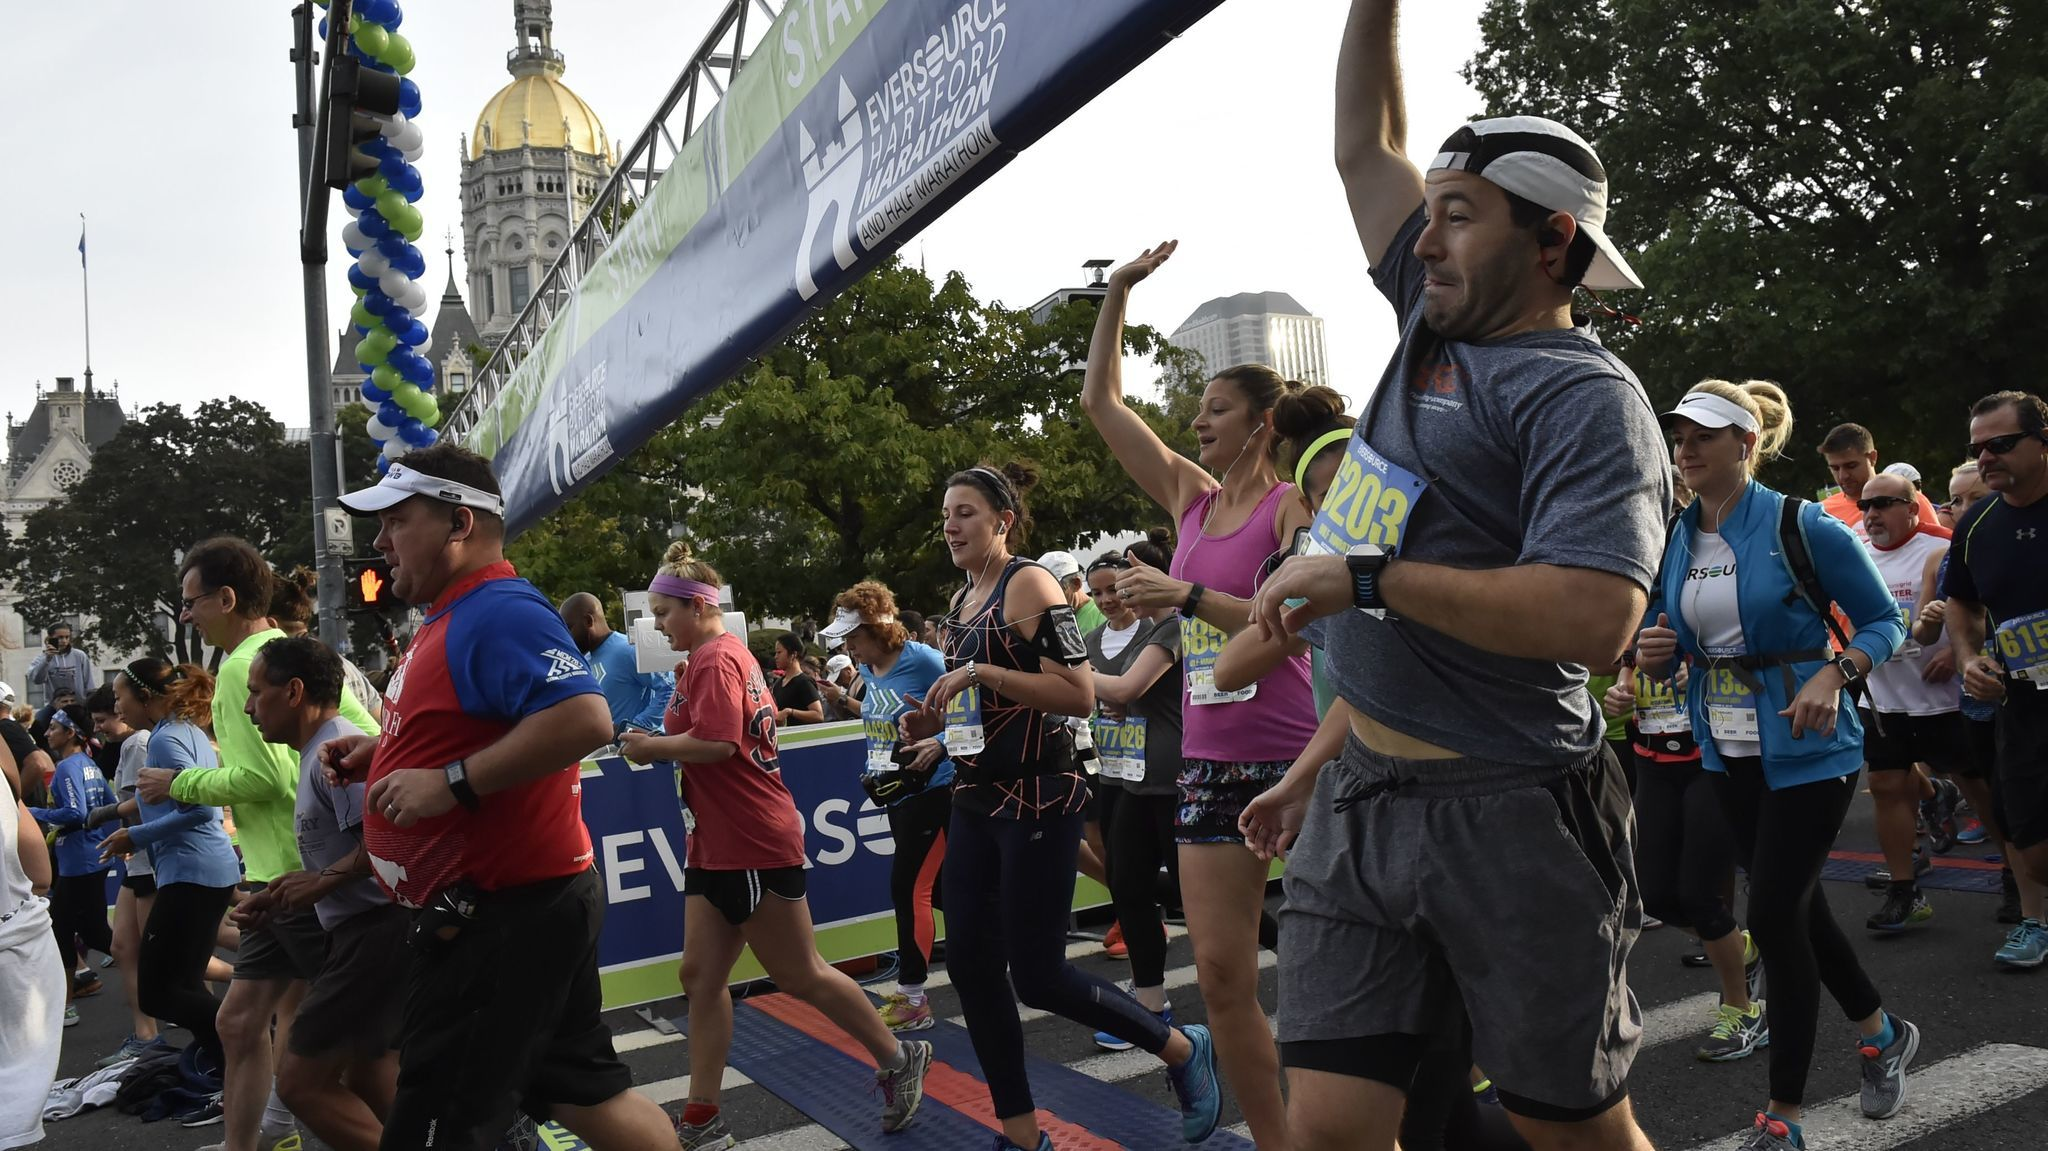 Runners cross the starting line at the Hartford Marathon.